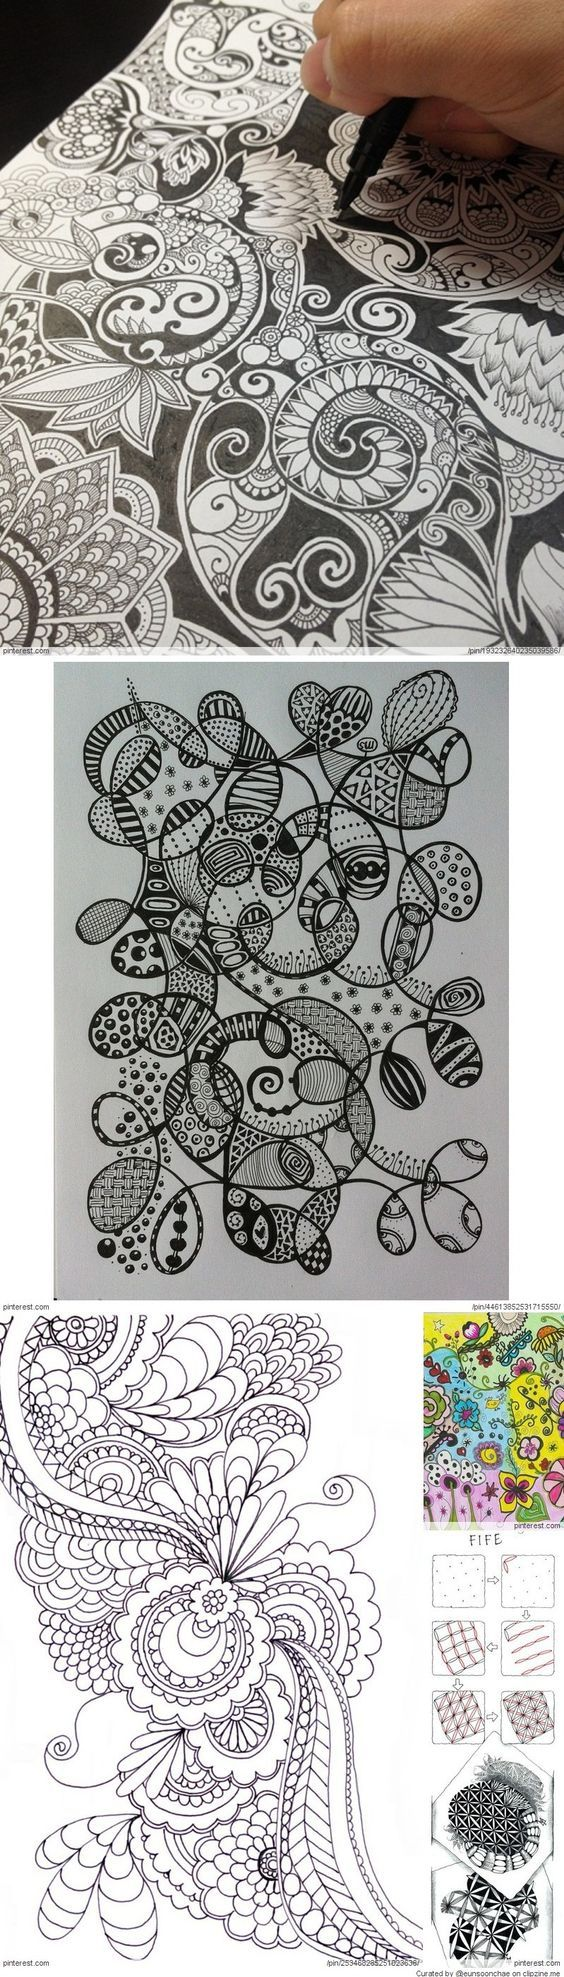 Zentangle Patterns & Ideas: I like the idea of having 'blank' space to color in black/another color.